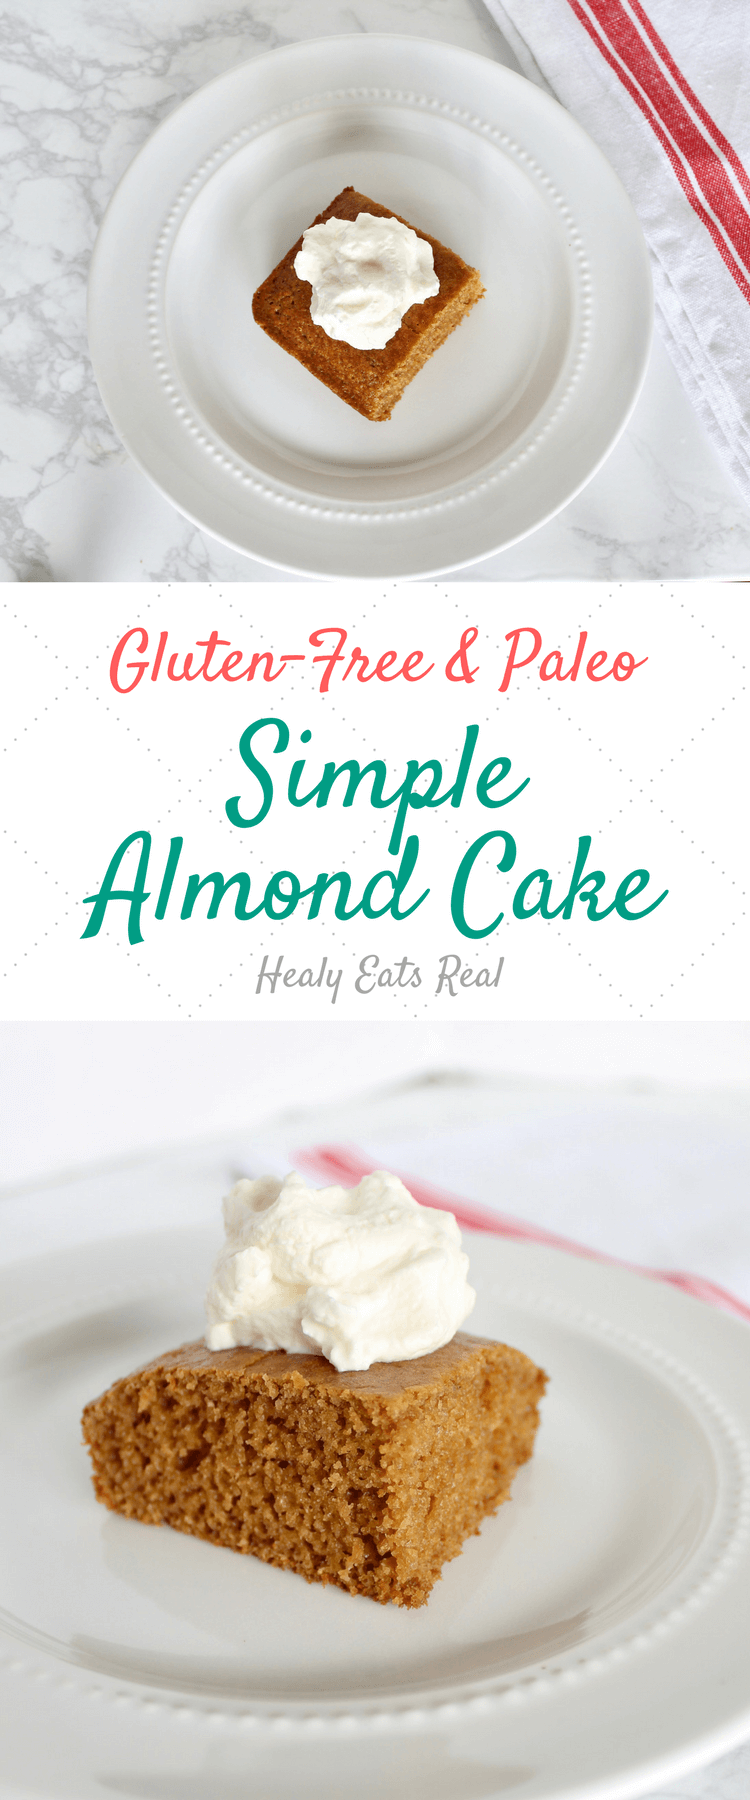 Simple Almond Cake (Paleo & Gluten-Free)-This simple paleo and gluten free almond cake is a great moist, delicious, low-sugar and easy dessert recipe to make from scratch. Made from almond flour and a few other paleo and gluten free flours, this cake has a great texture!